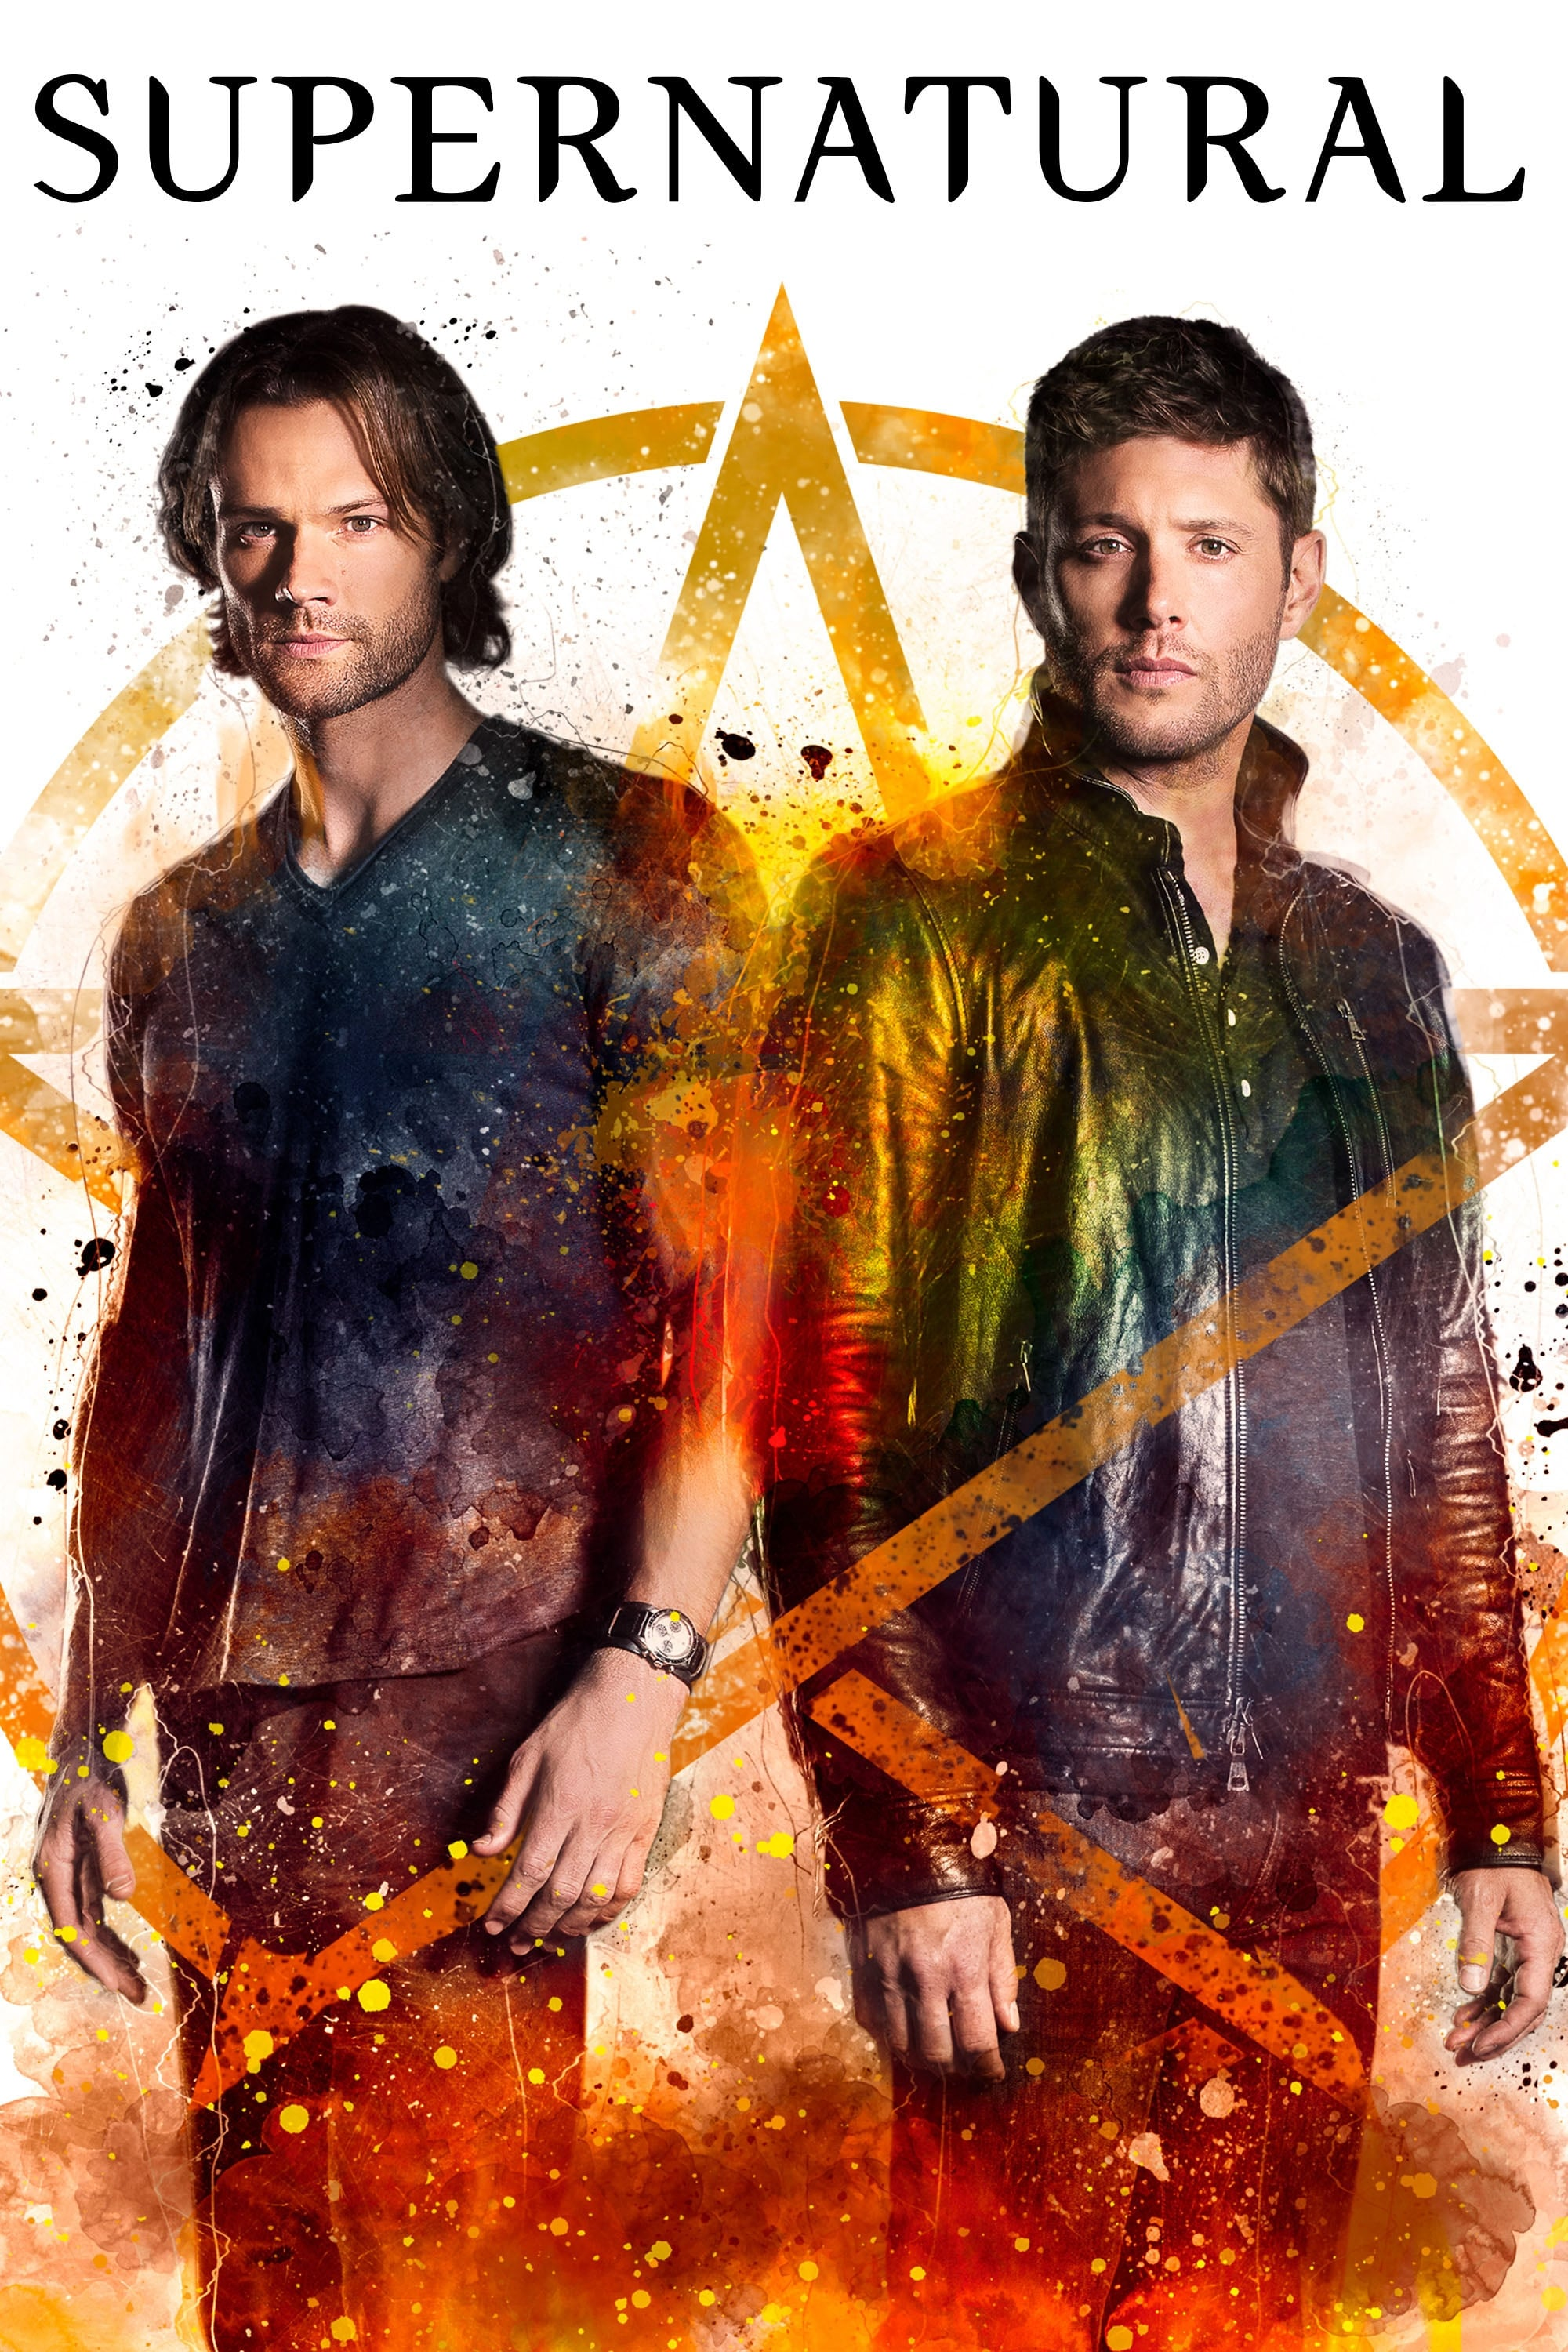 Supernatural (TV Series 2005- ) - Posters — The Movie ...Supernatural